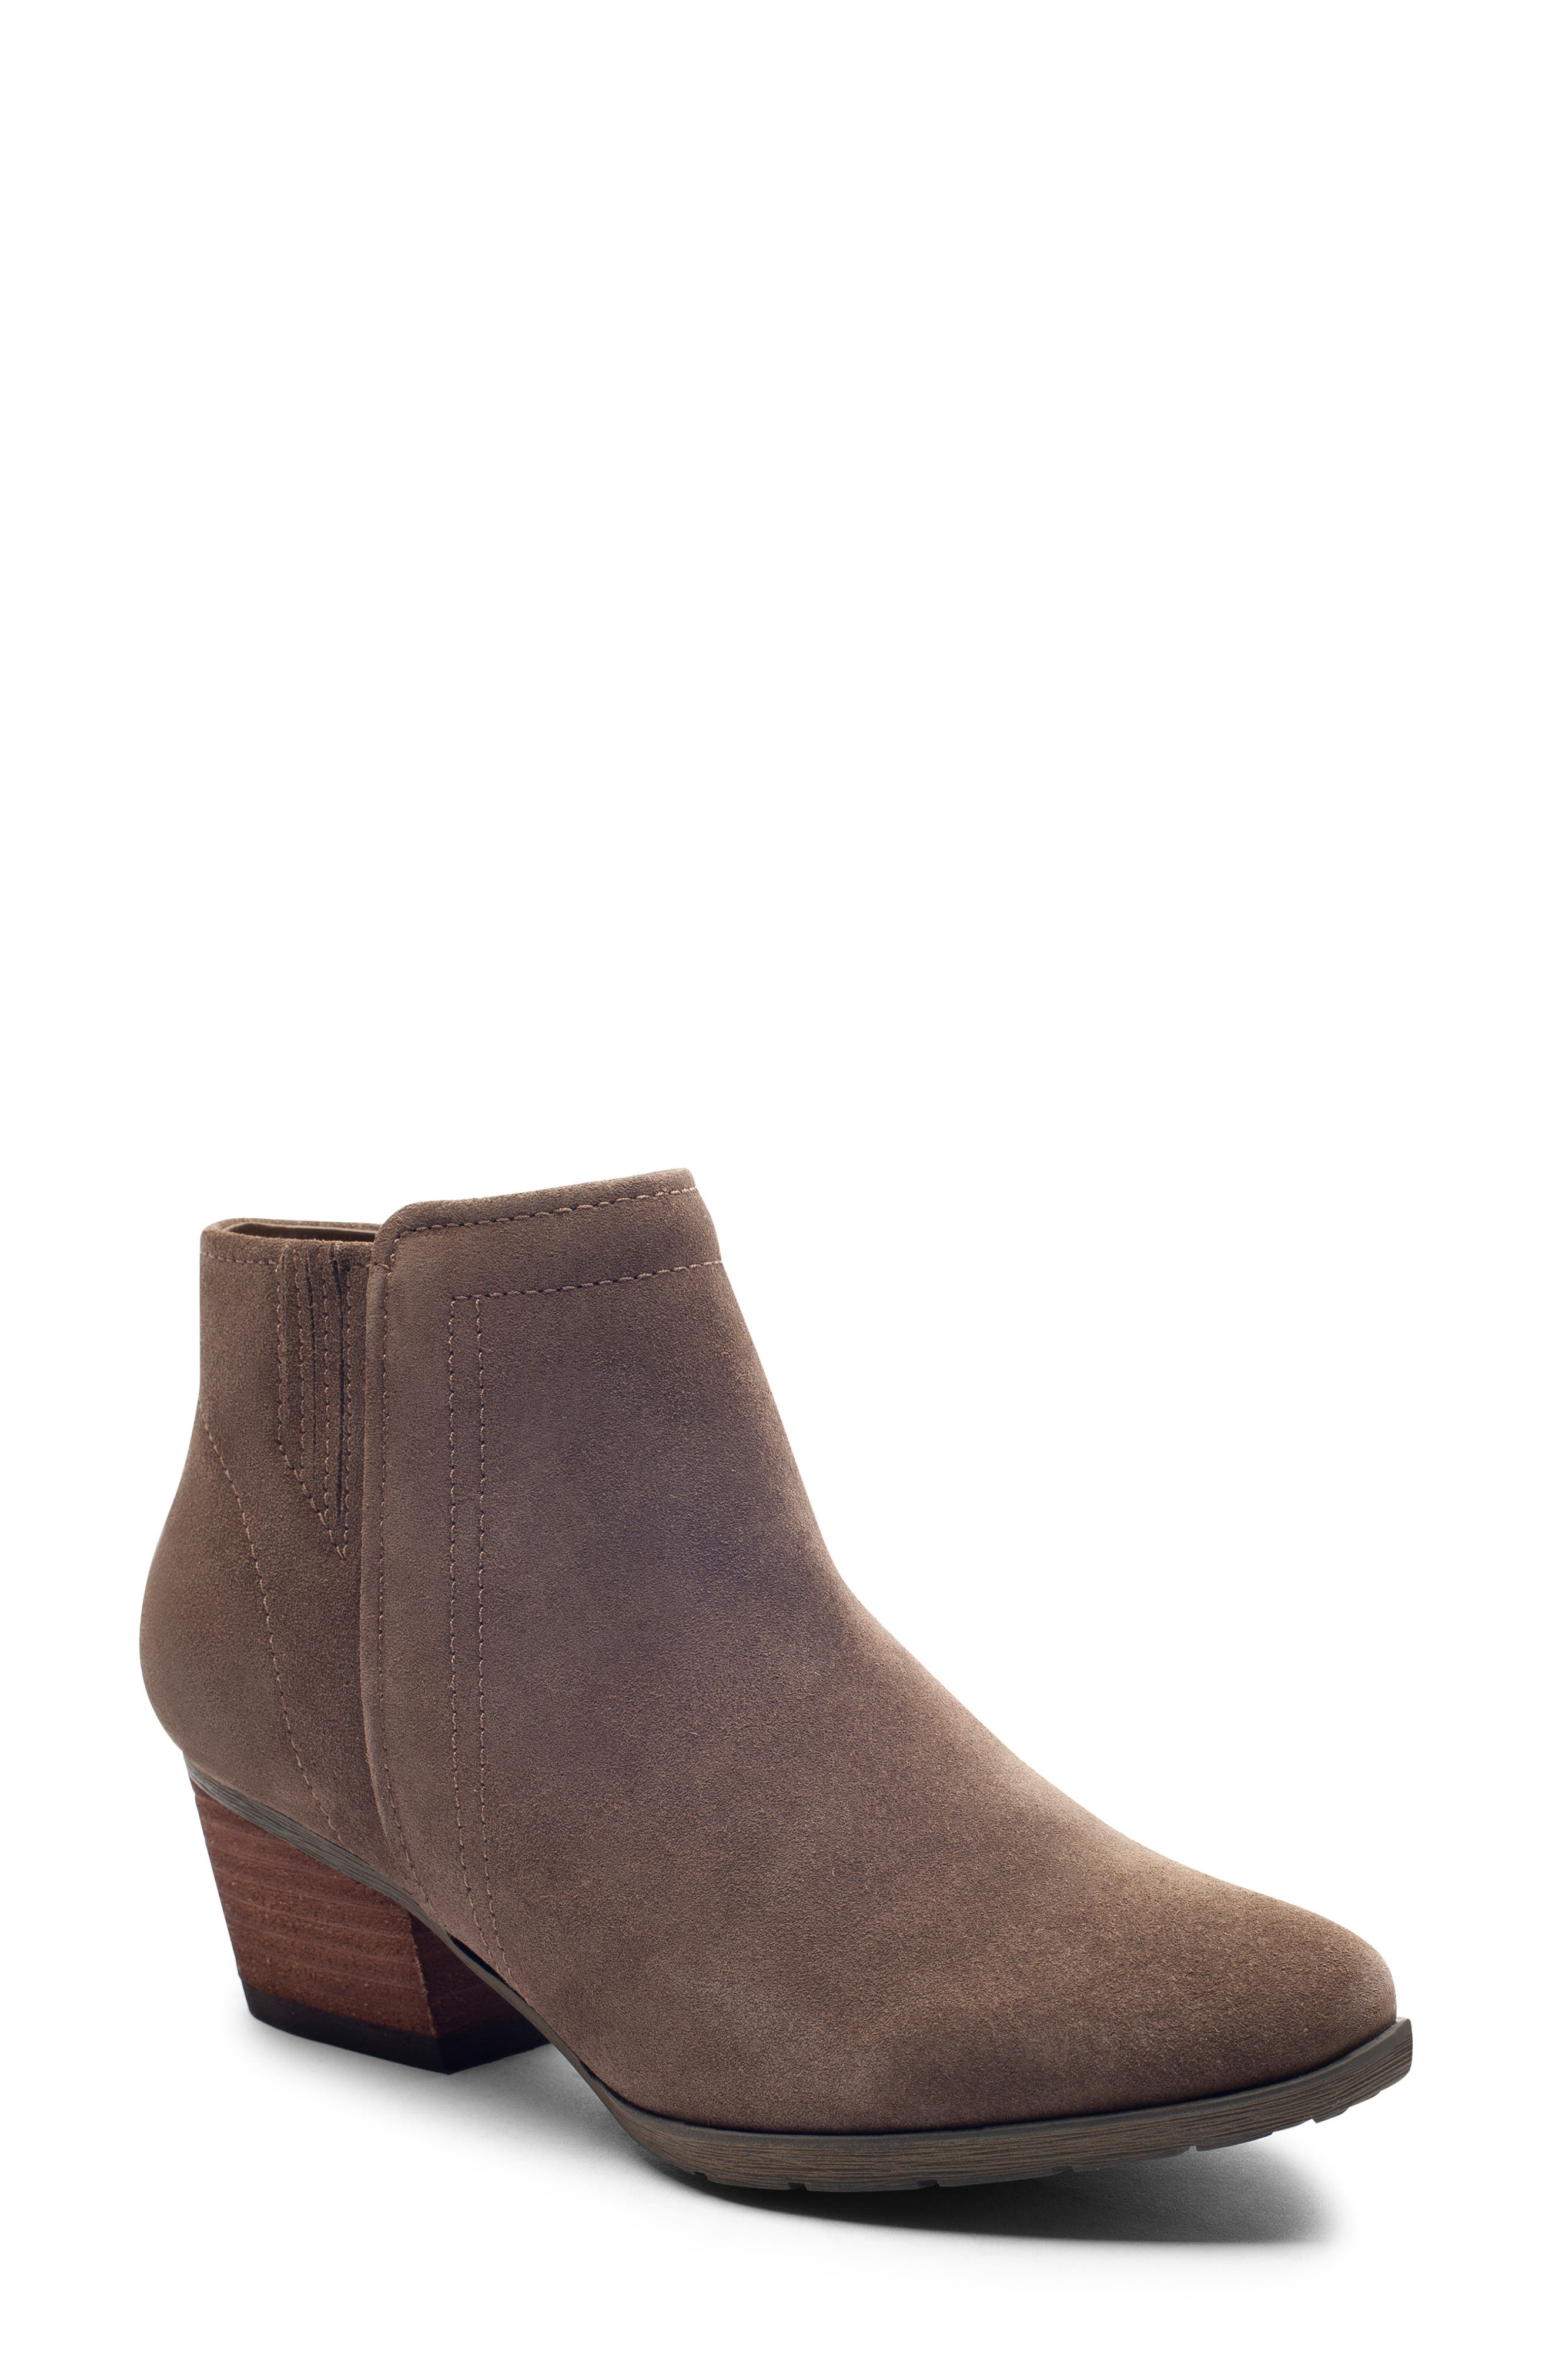 'Valli' Waterproof  Bootie,                         Main,                         color, DARK TAUPE SUEDE